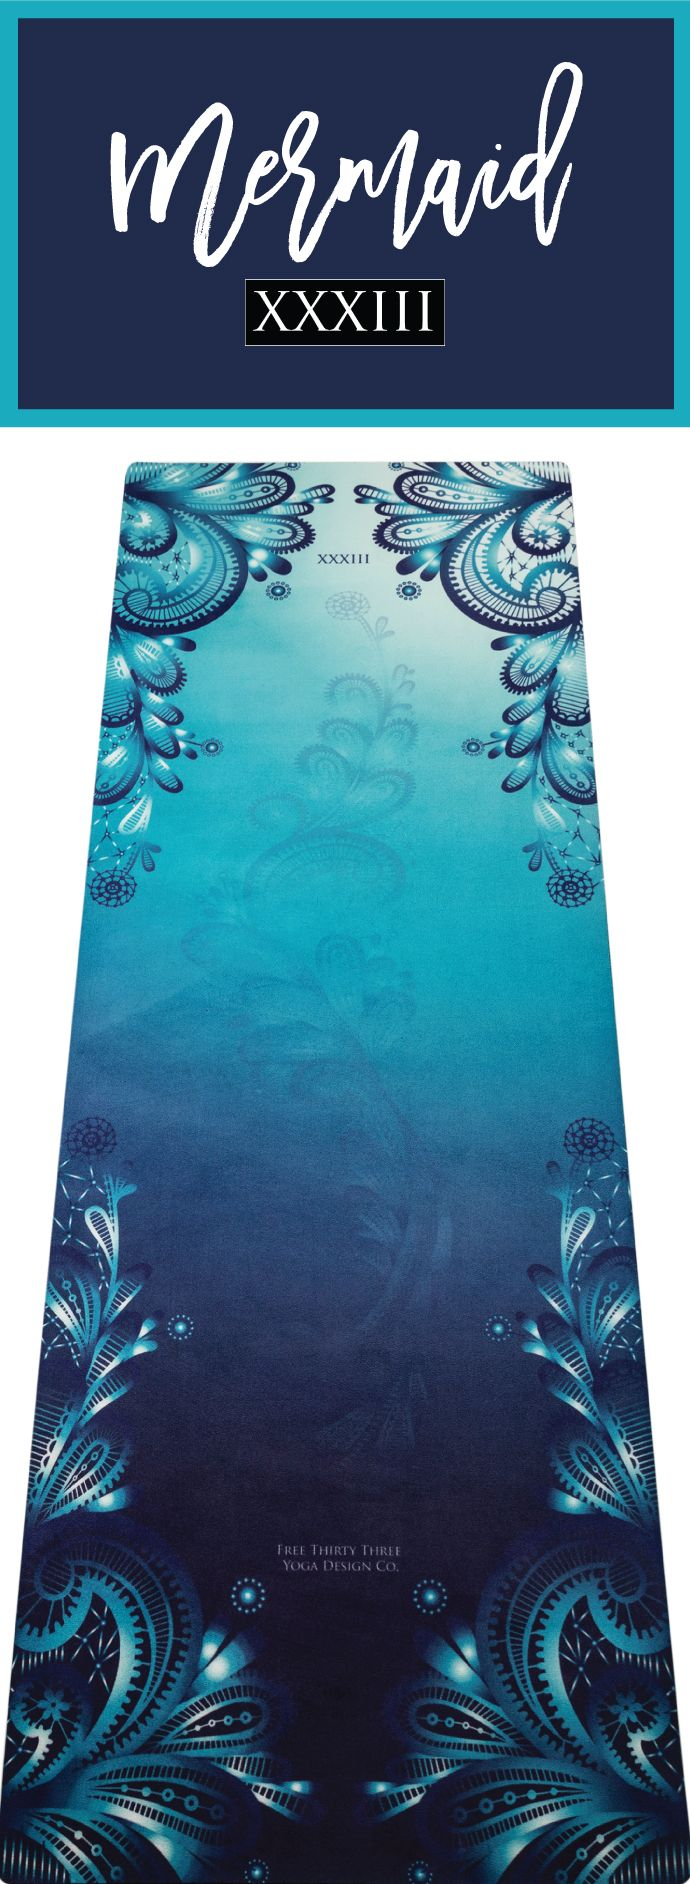 MERMAID YOGA MAT!!  Best Yoga Mats Yoga Towel Combo made Beautiful!  Calling all Inner Mermaids!  Beautiful Yoga Mats, Yoga Towel, Yoga Strap one design